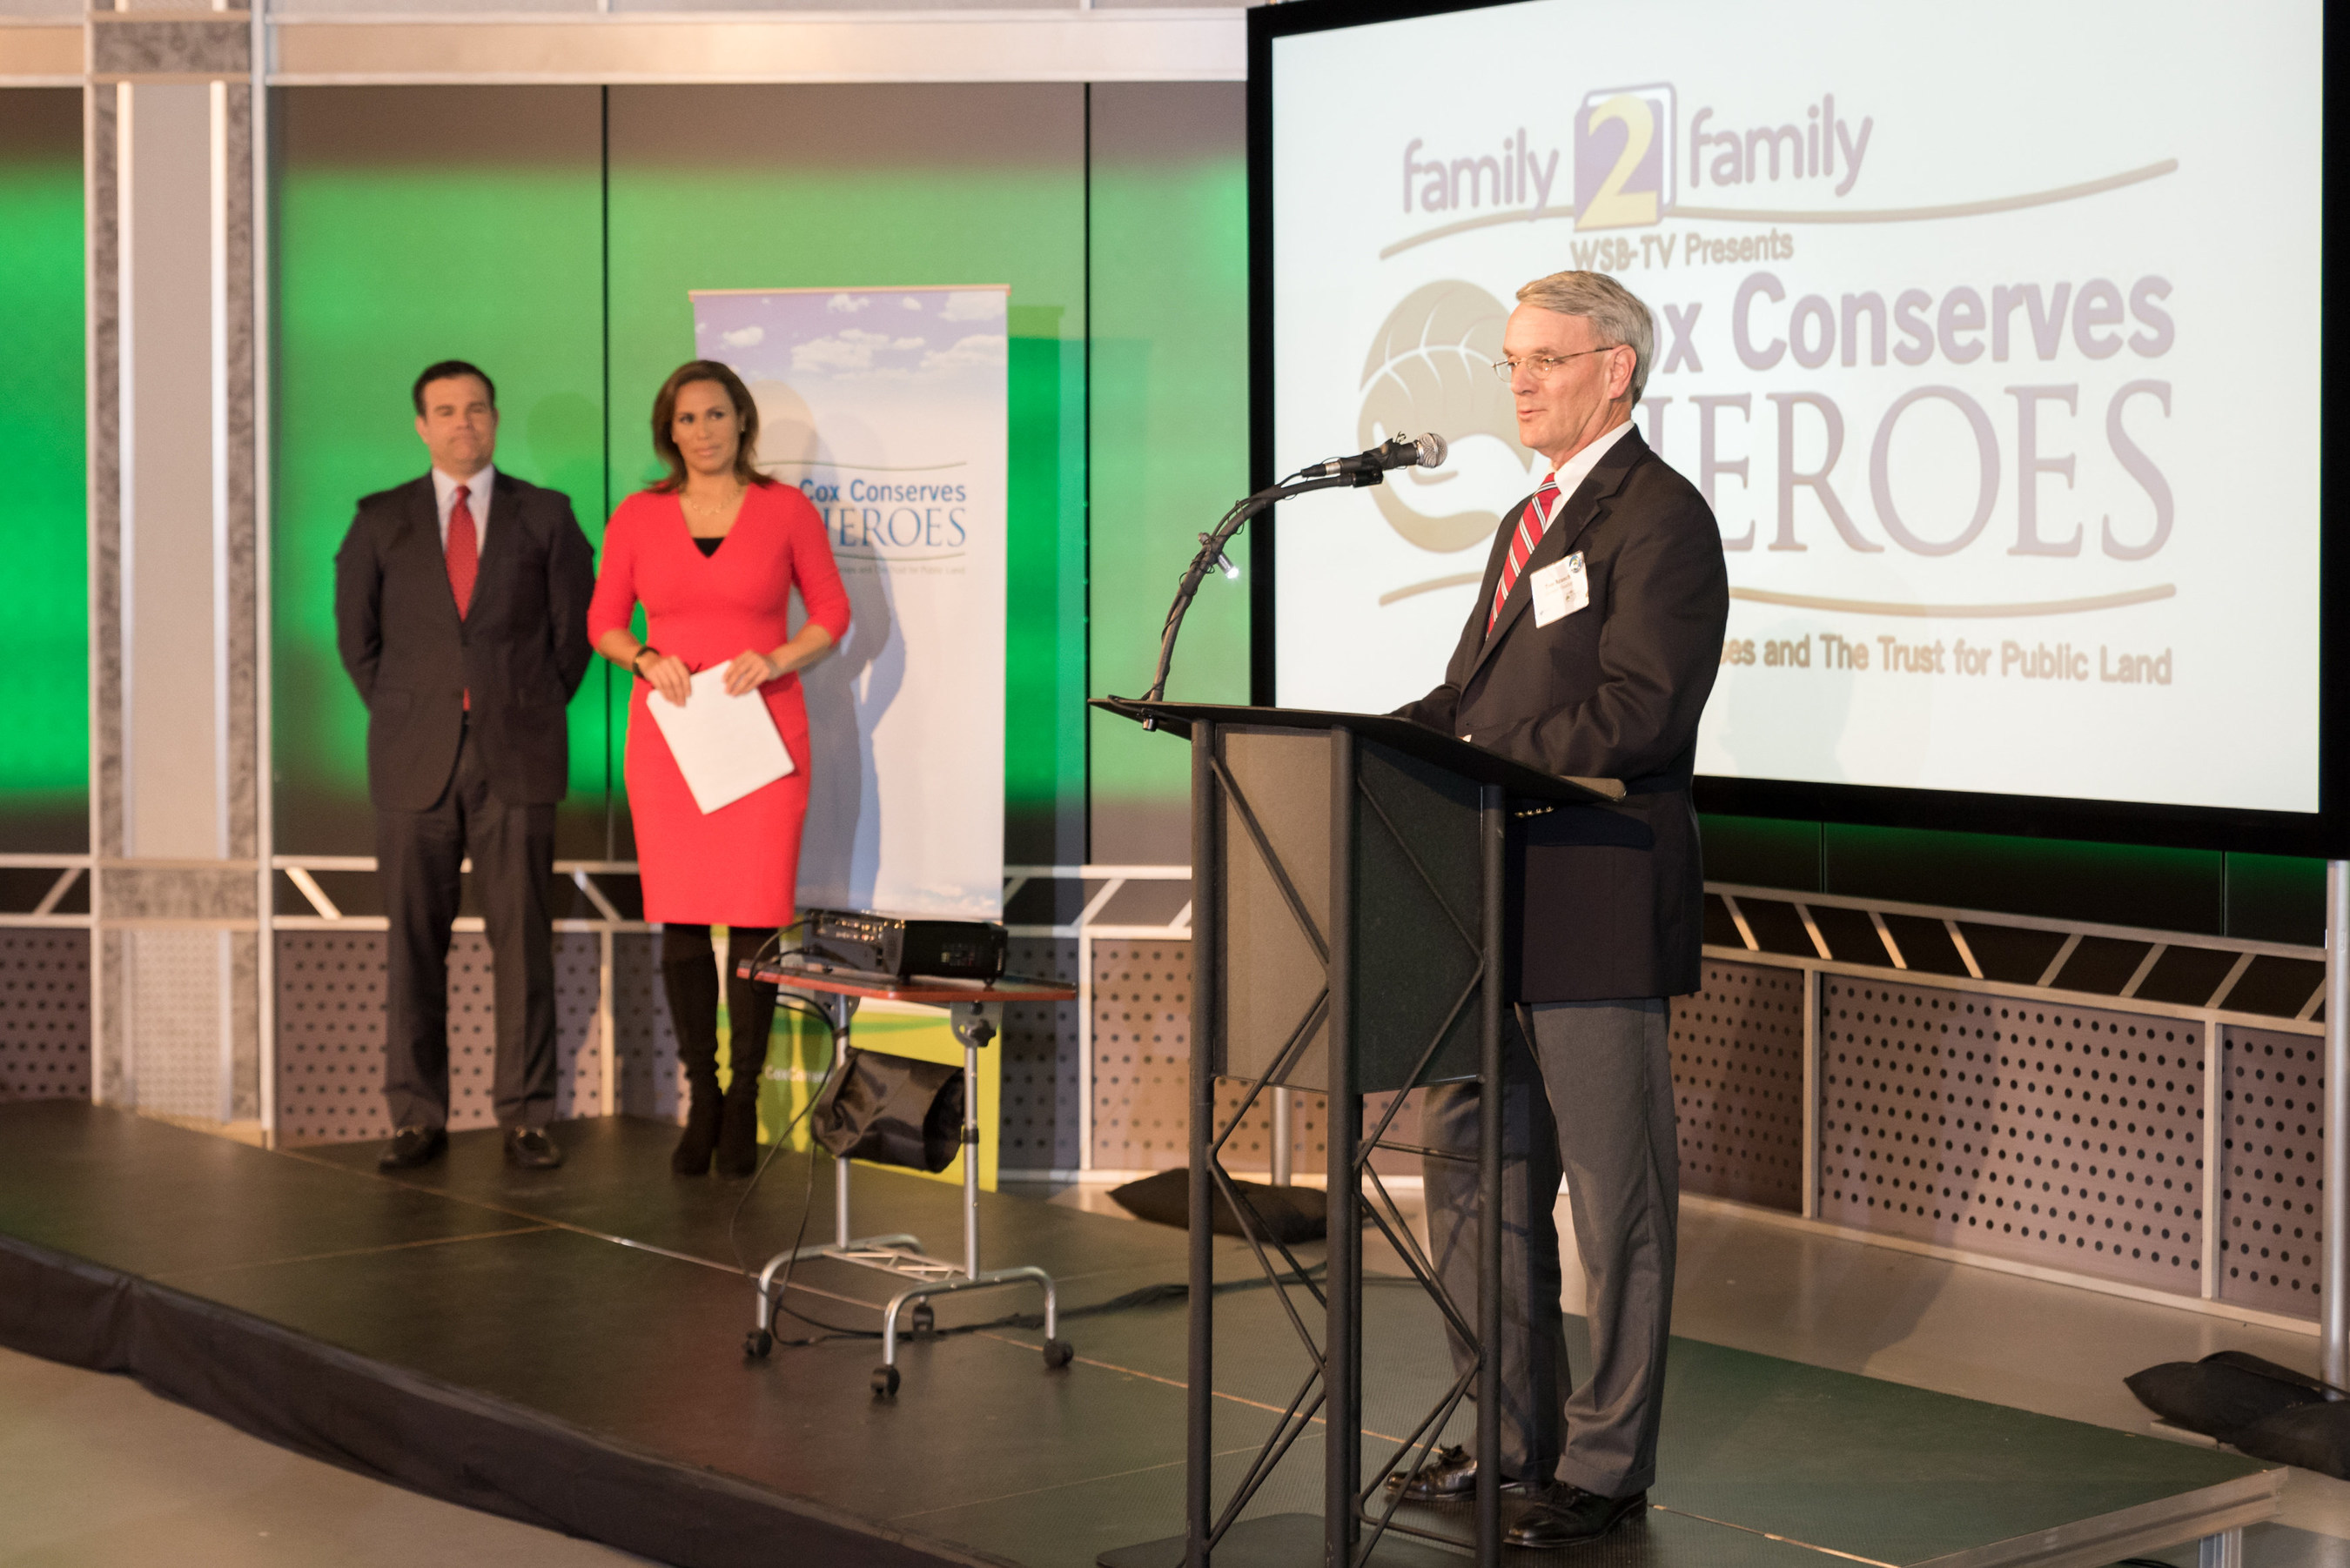 Ch. 2 WSB-TV and The Trust for Public Land Name Tom Branch as Atlanta's 2015 Cox Conserves Hero